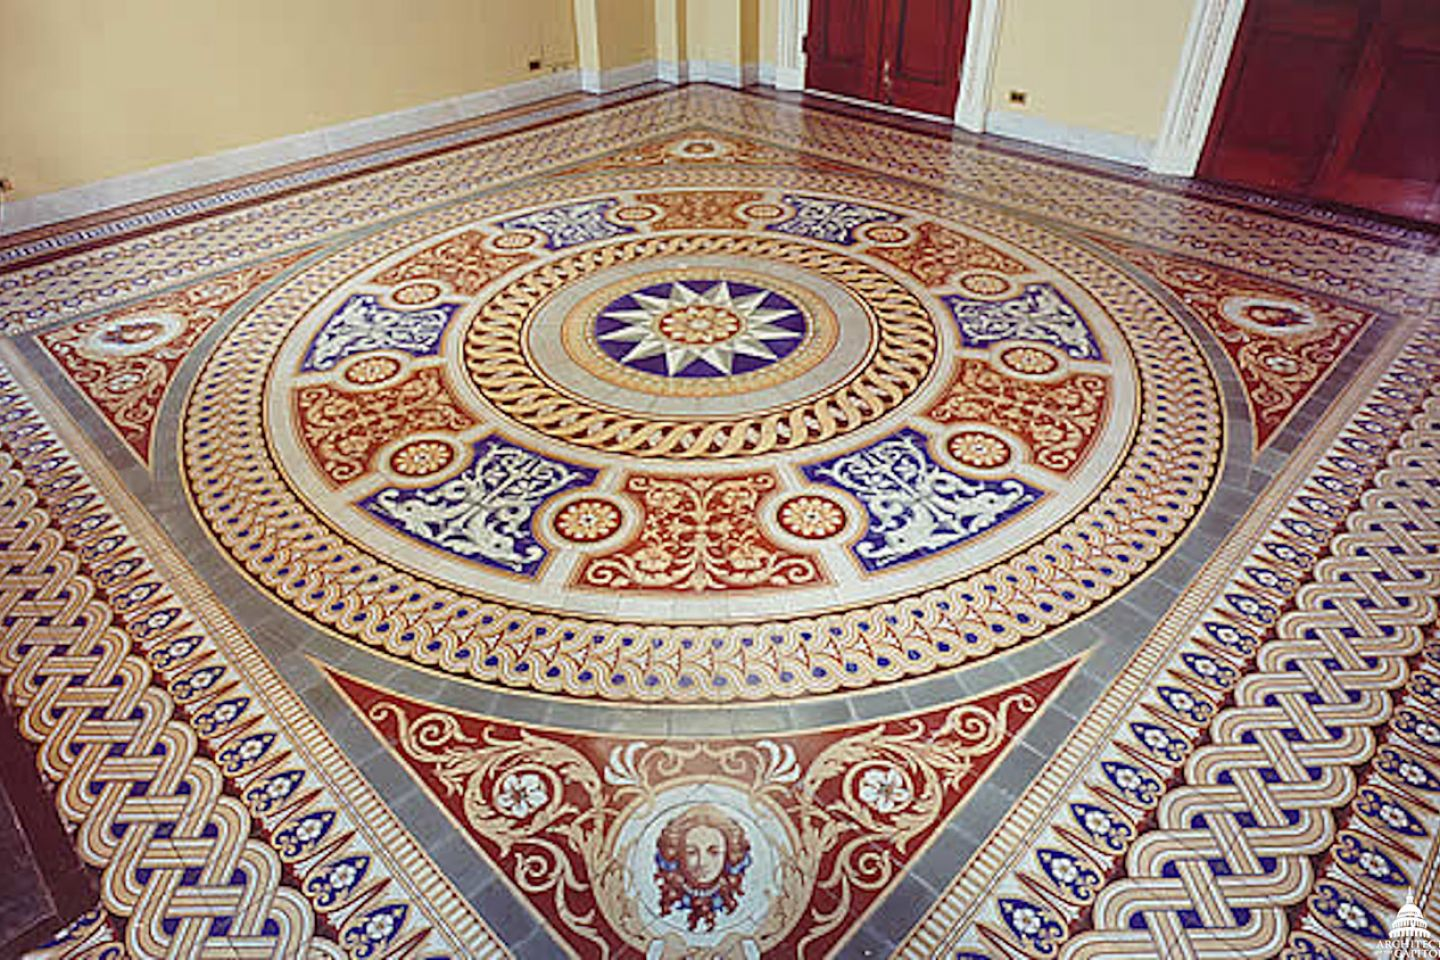 An image of the richly patterned and colored Minton tile floors in the U.S. Capitol.